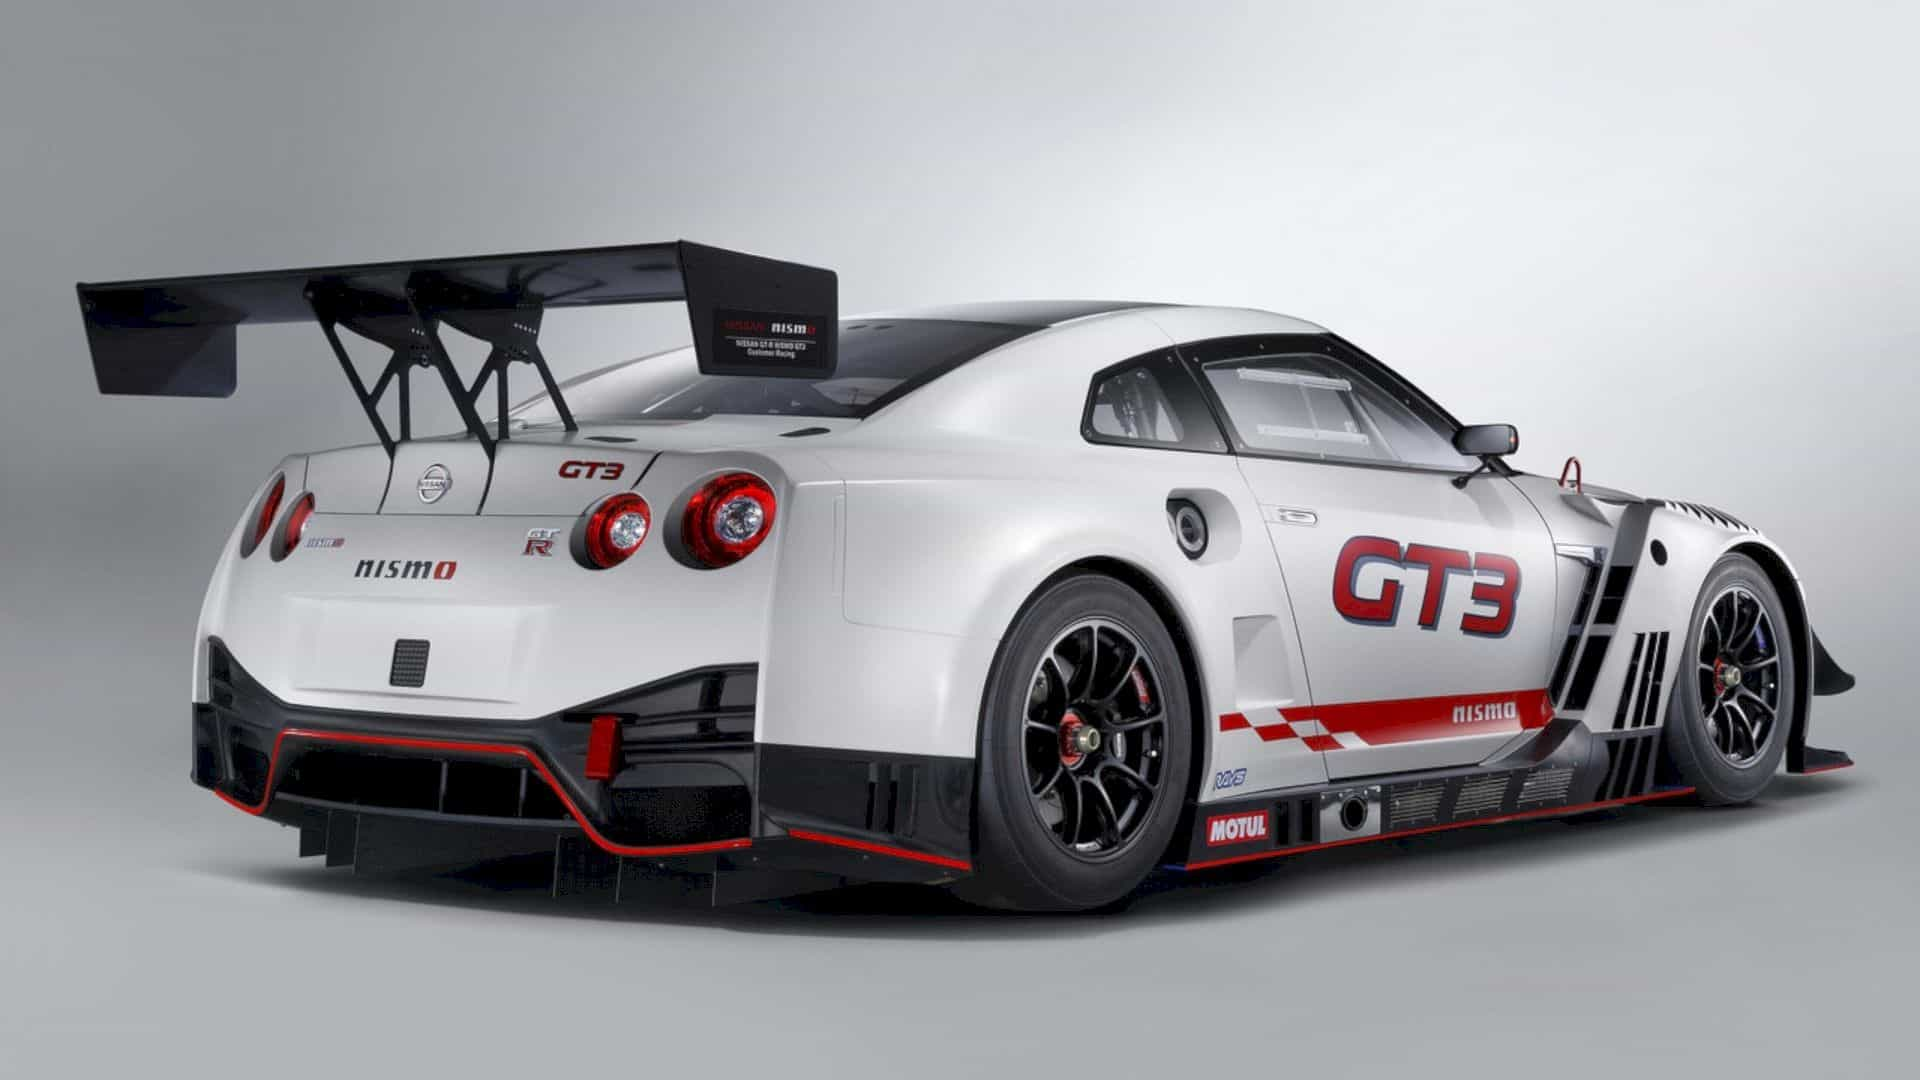 2018 Nissan GT-R Nismo GT3 – Top of the Top